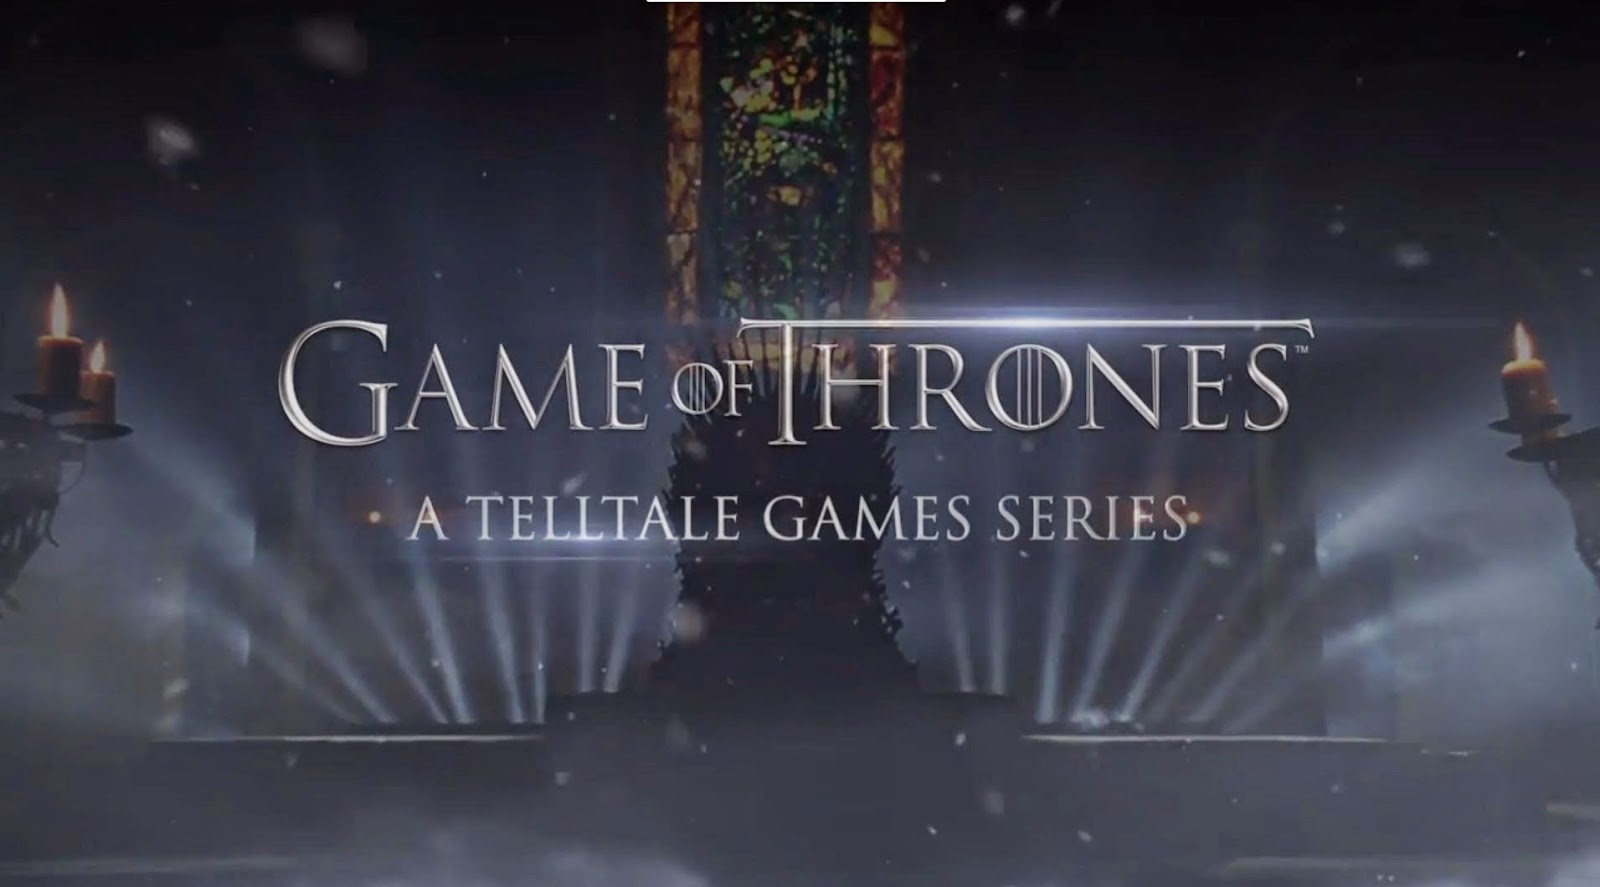 Game of Thrones: A Telltale Game Series Episode 2 Release Date